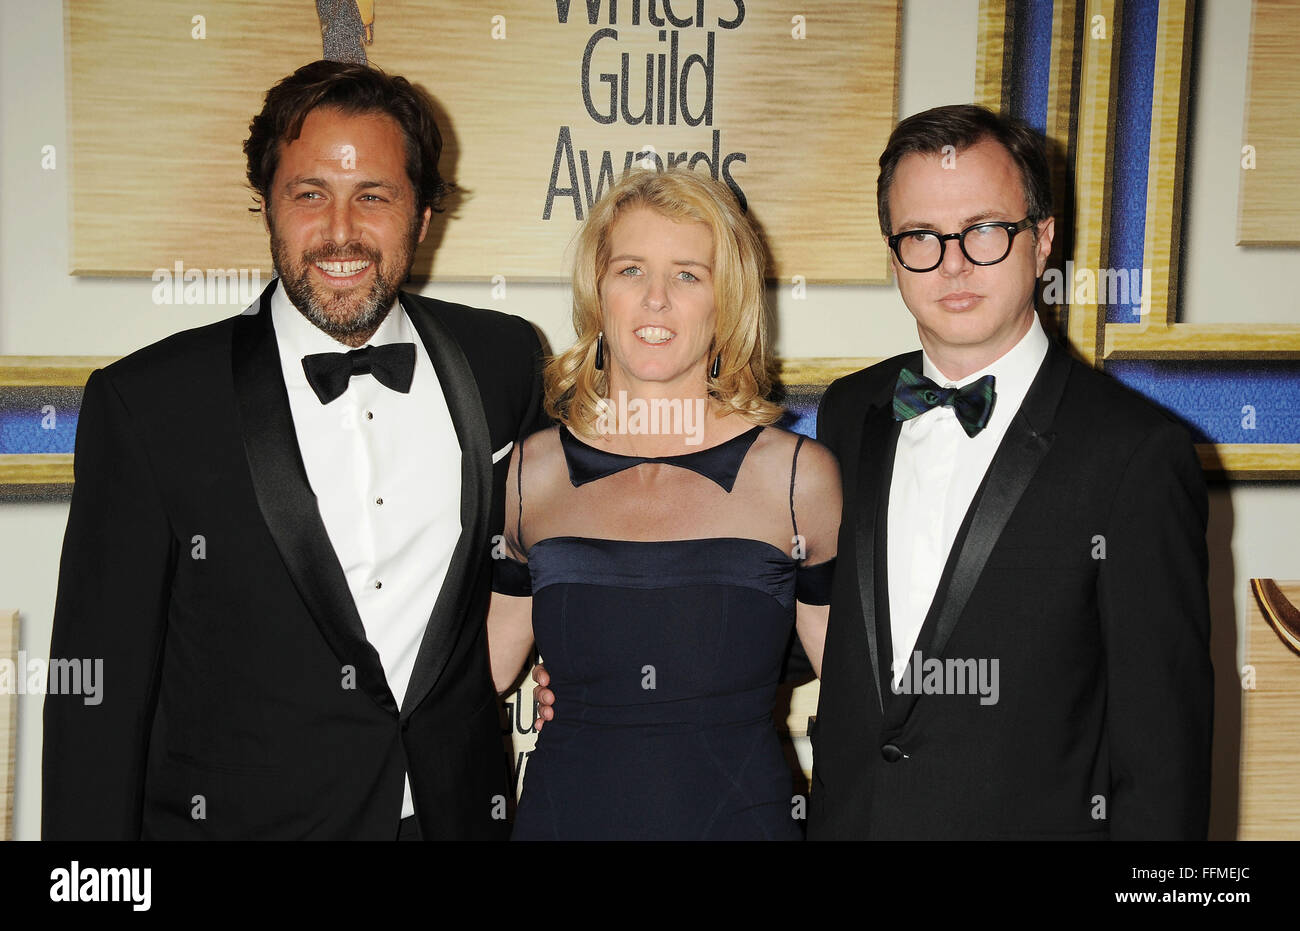 (L-R) Screenwriter Mark Bailey, director Rory Kennedy and guest attend the 2015 Writers Guild Awards L.A. Ceremony - Stock Image